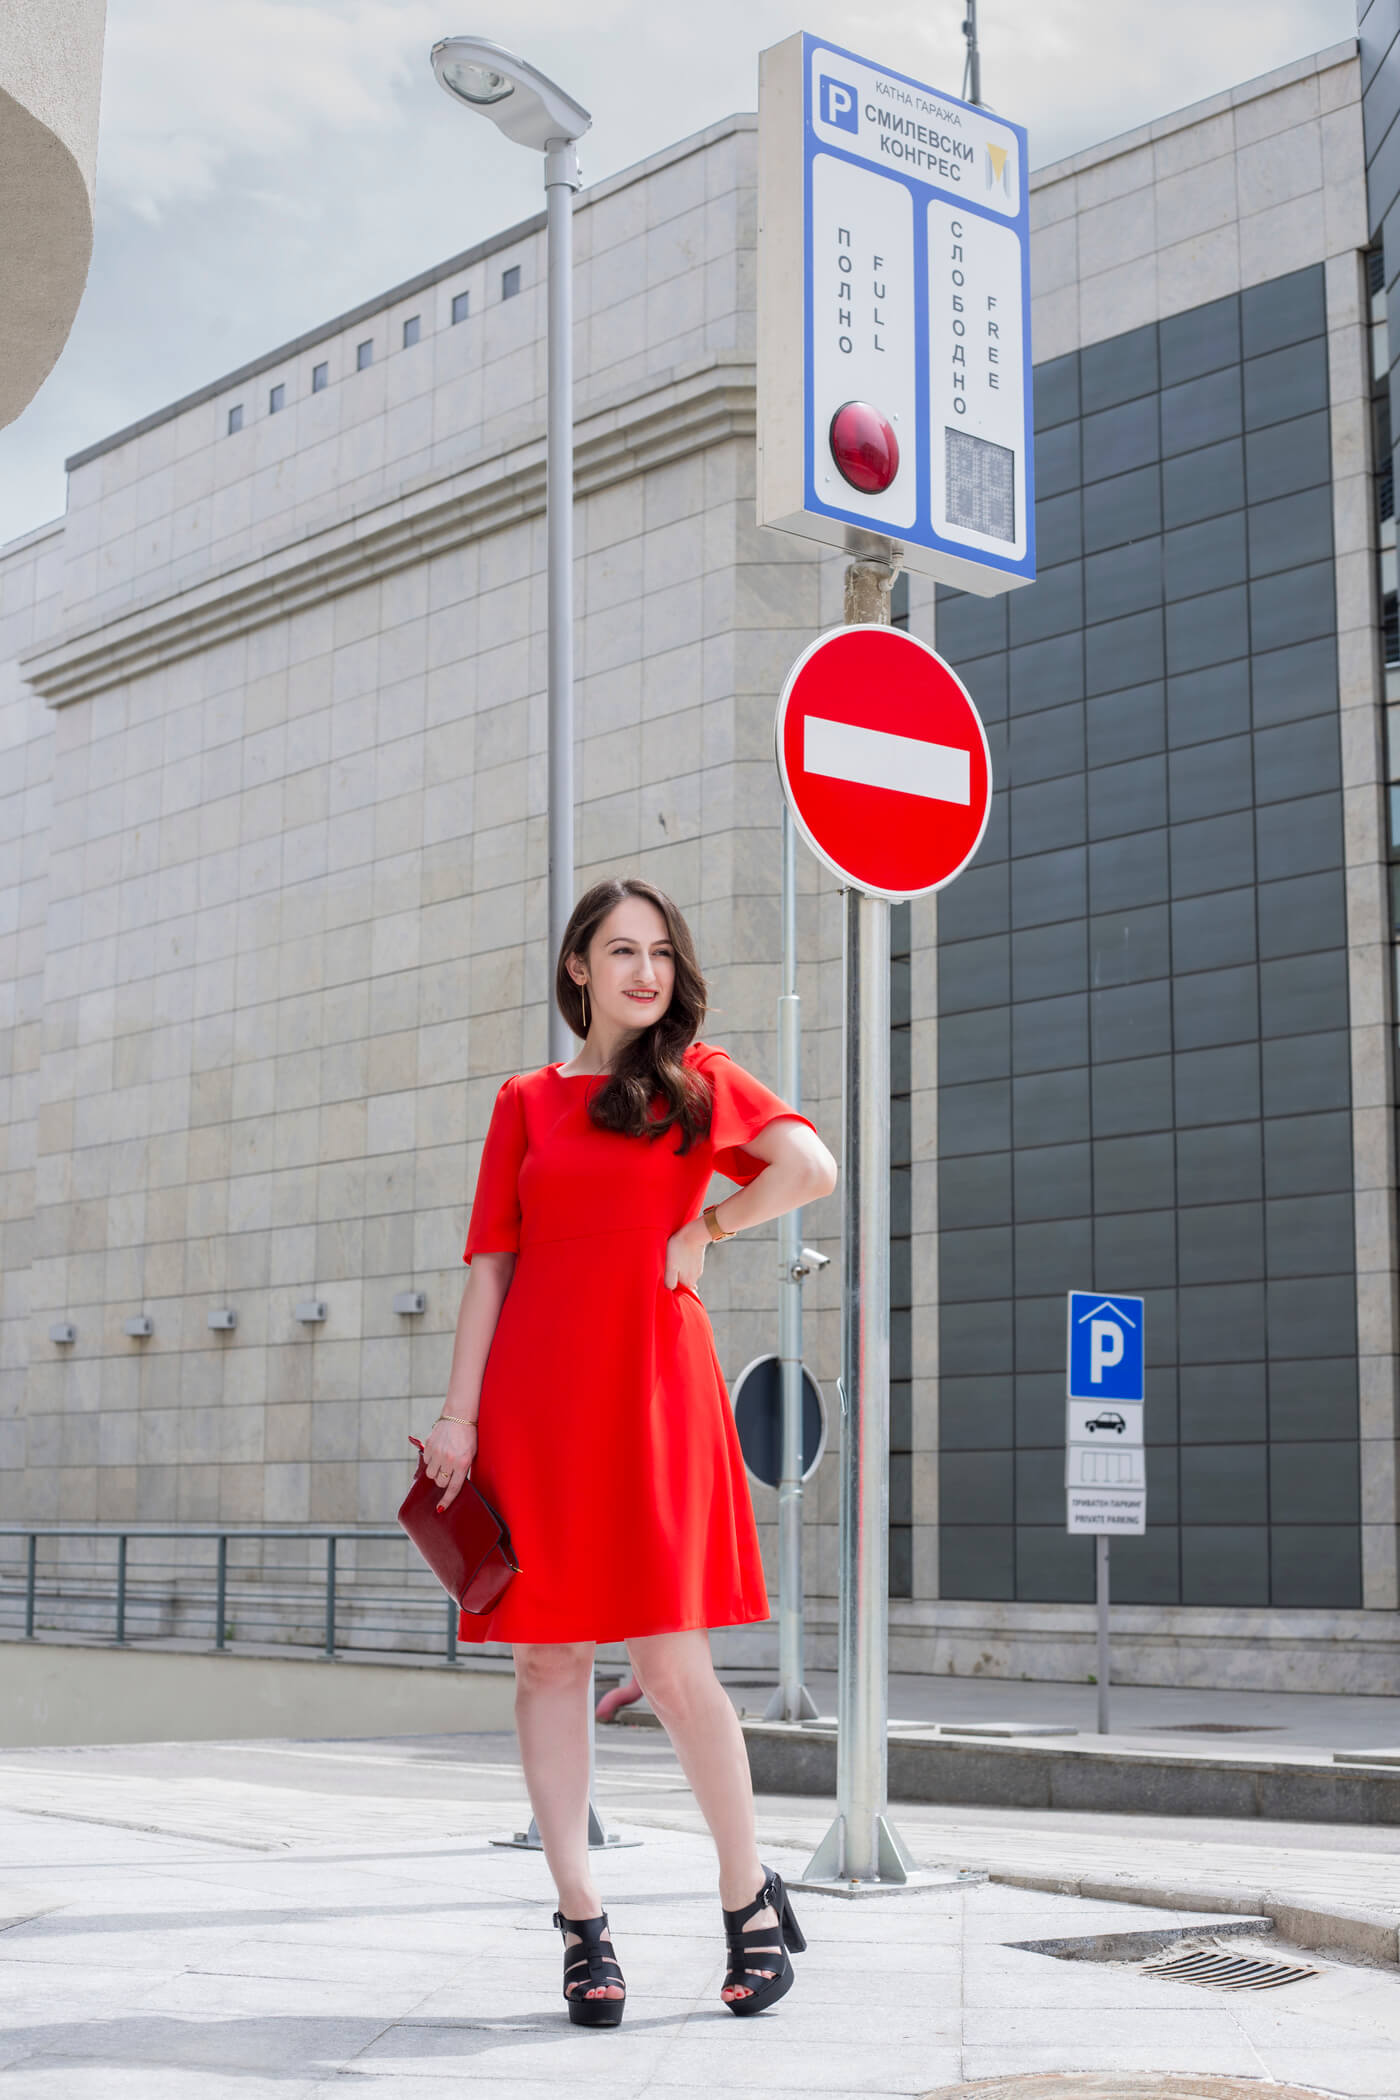 Contrary to popular belief, I think red is the easiest color to pull off. Read more about it in this post featuring this charming little red dress.